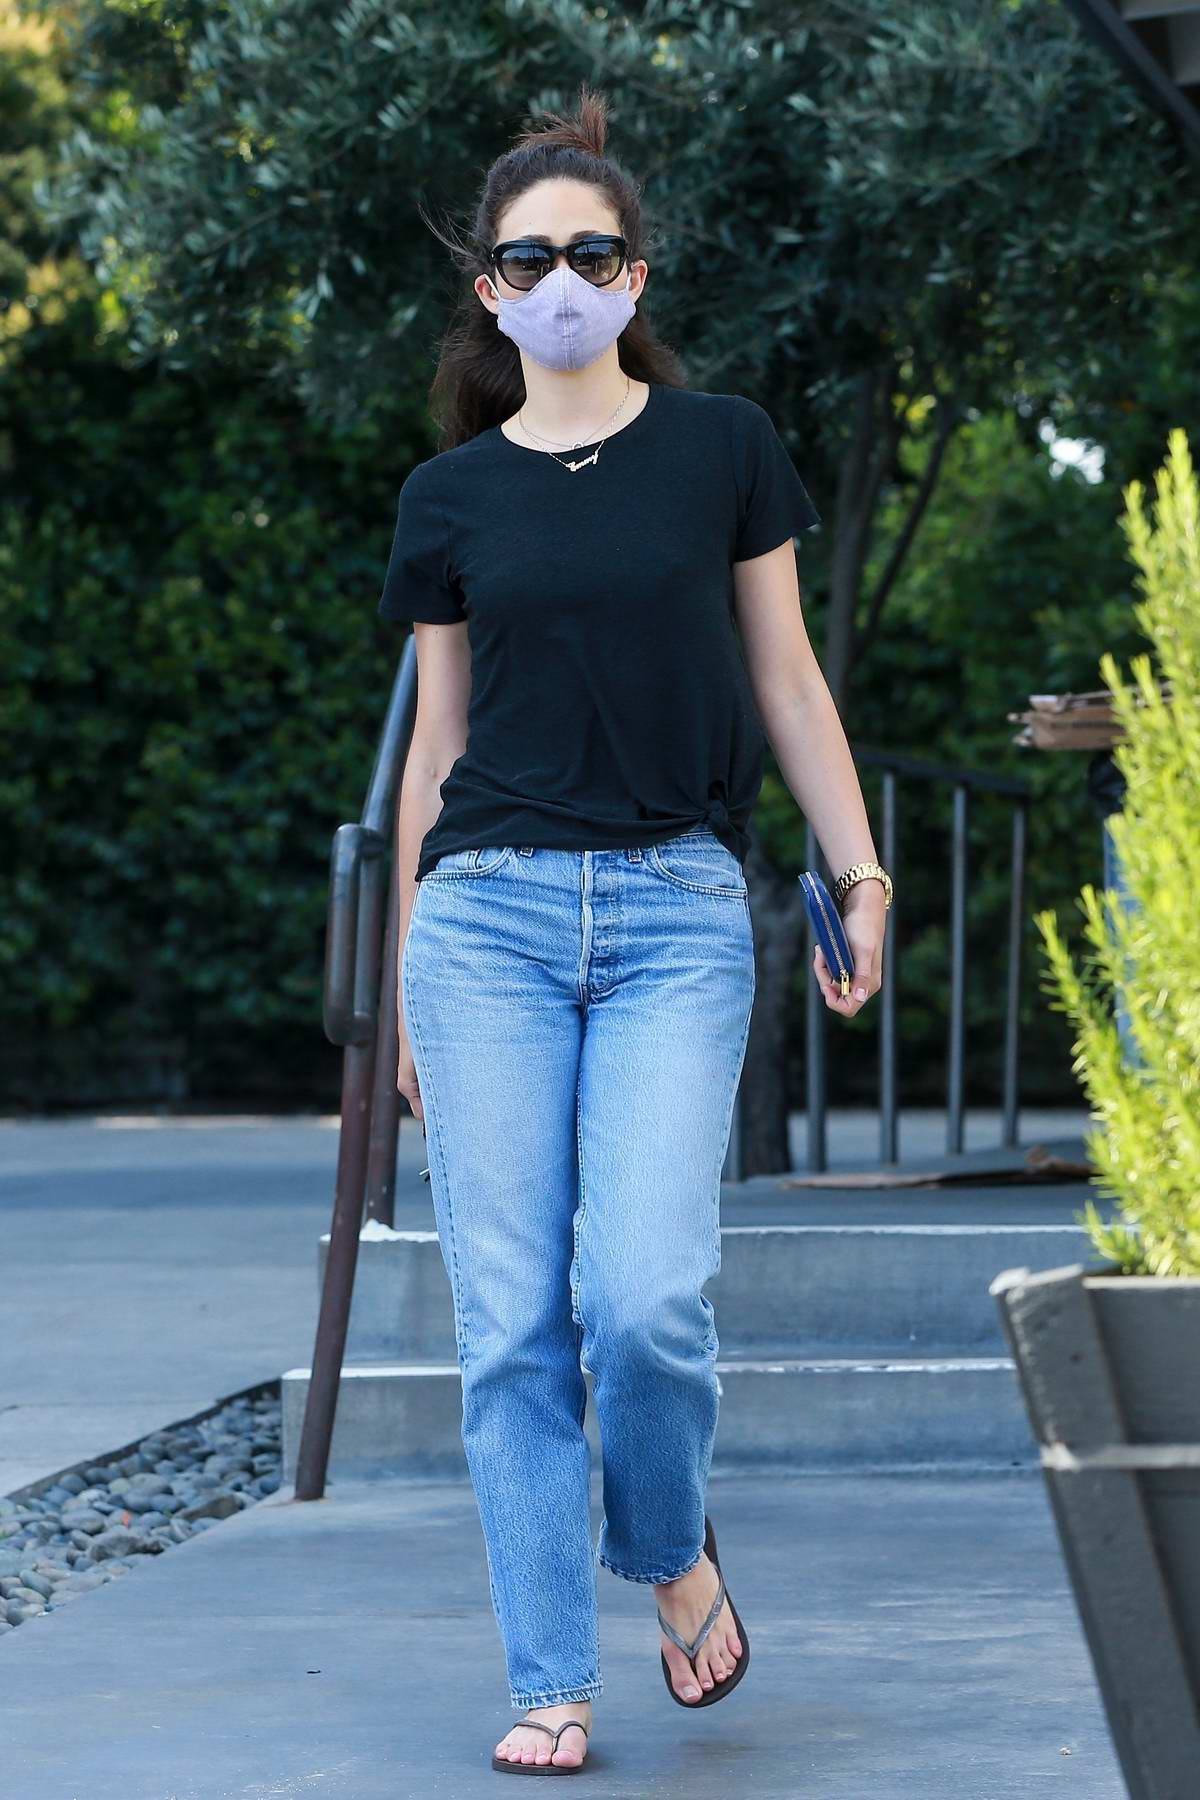 Emmy Rossum picks up some food at Sweetgreen Health food restaurant in West Hollywood, California